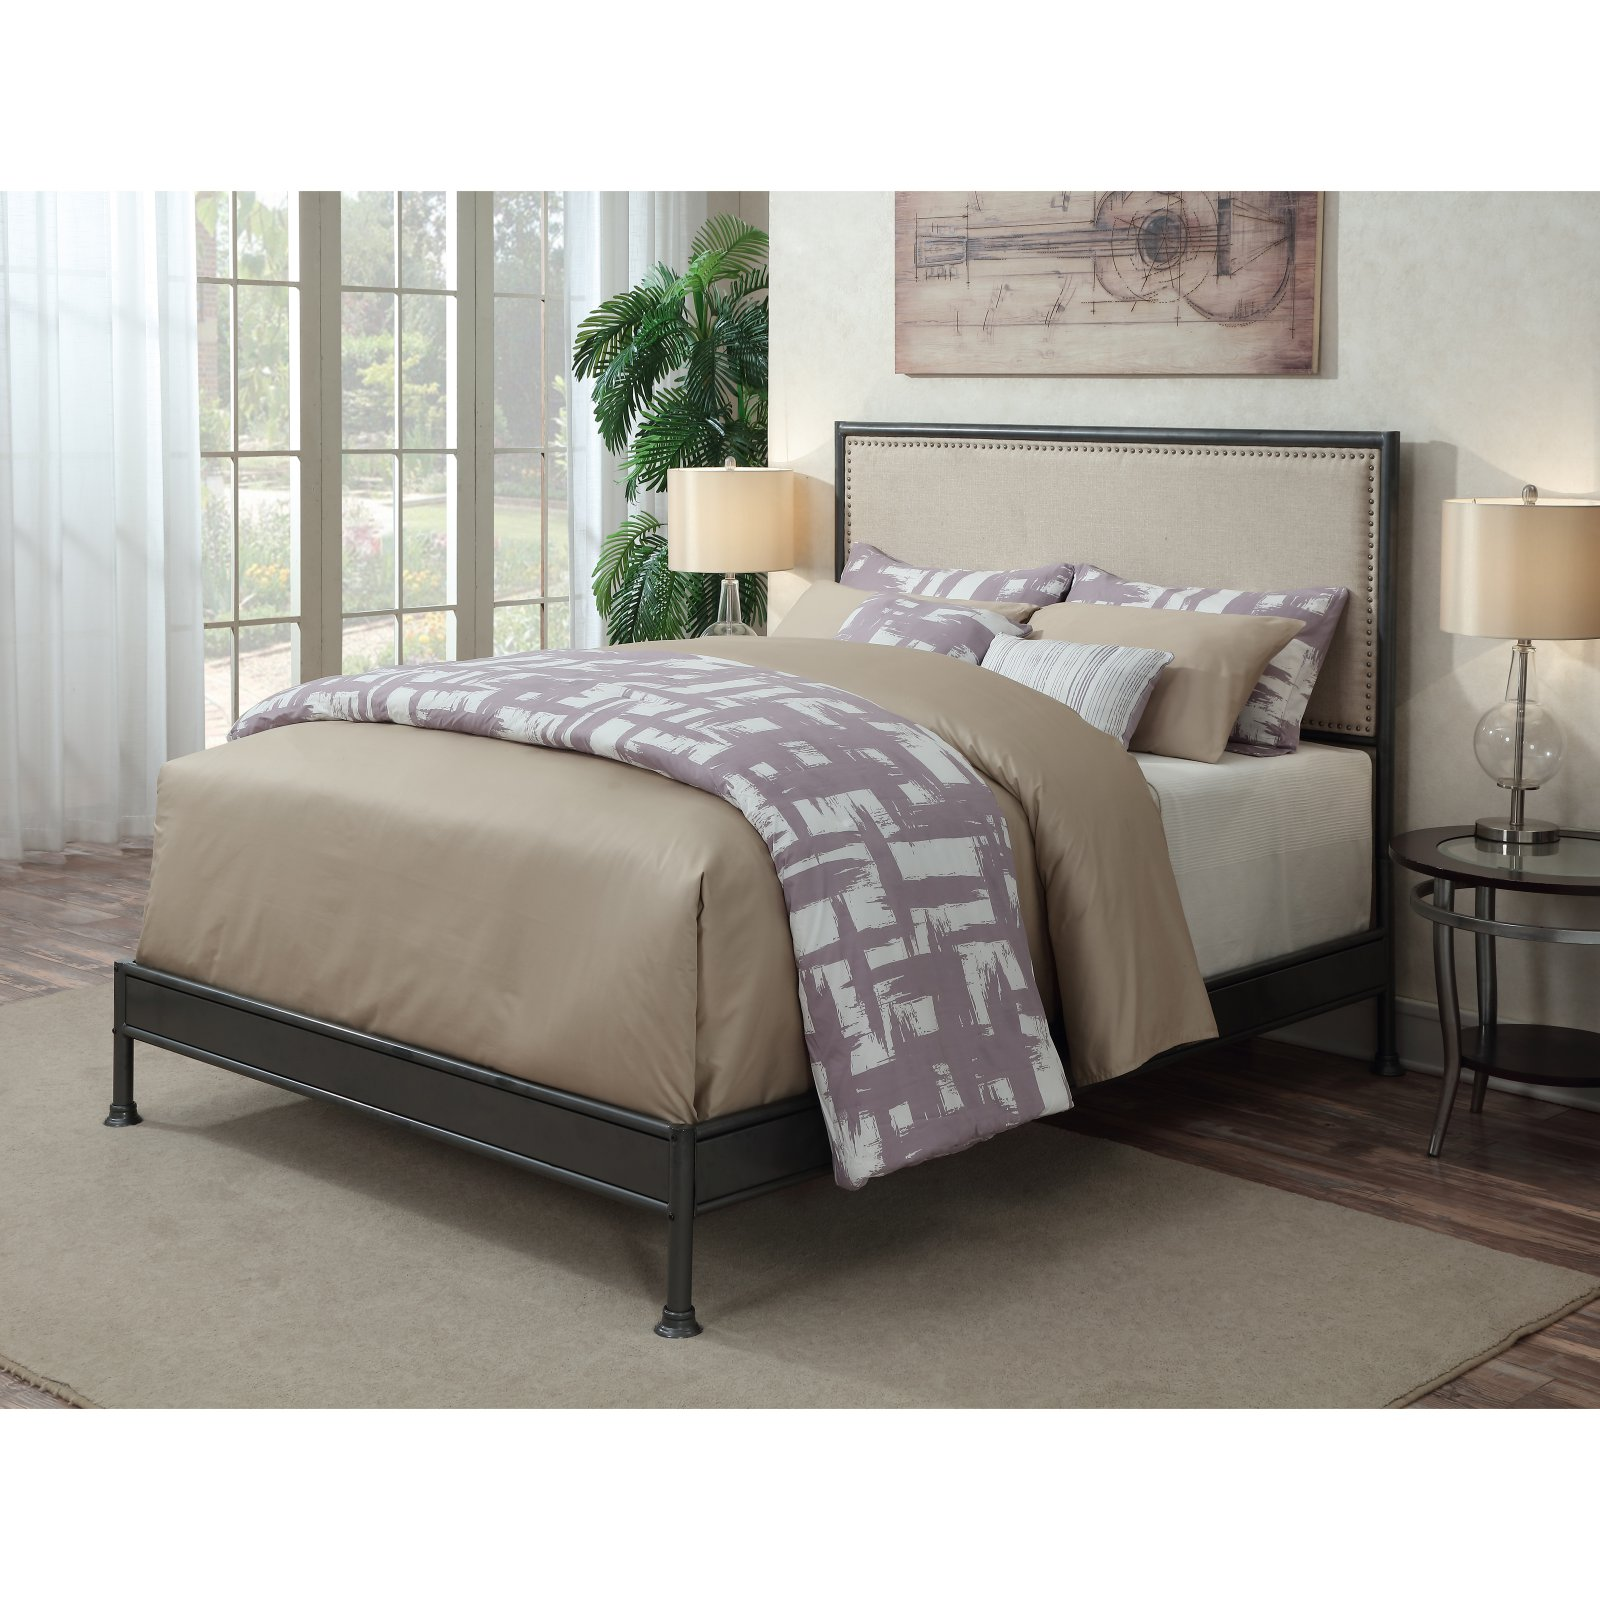 Right2Home Industrial Upholstered Panel Bed - Queen